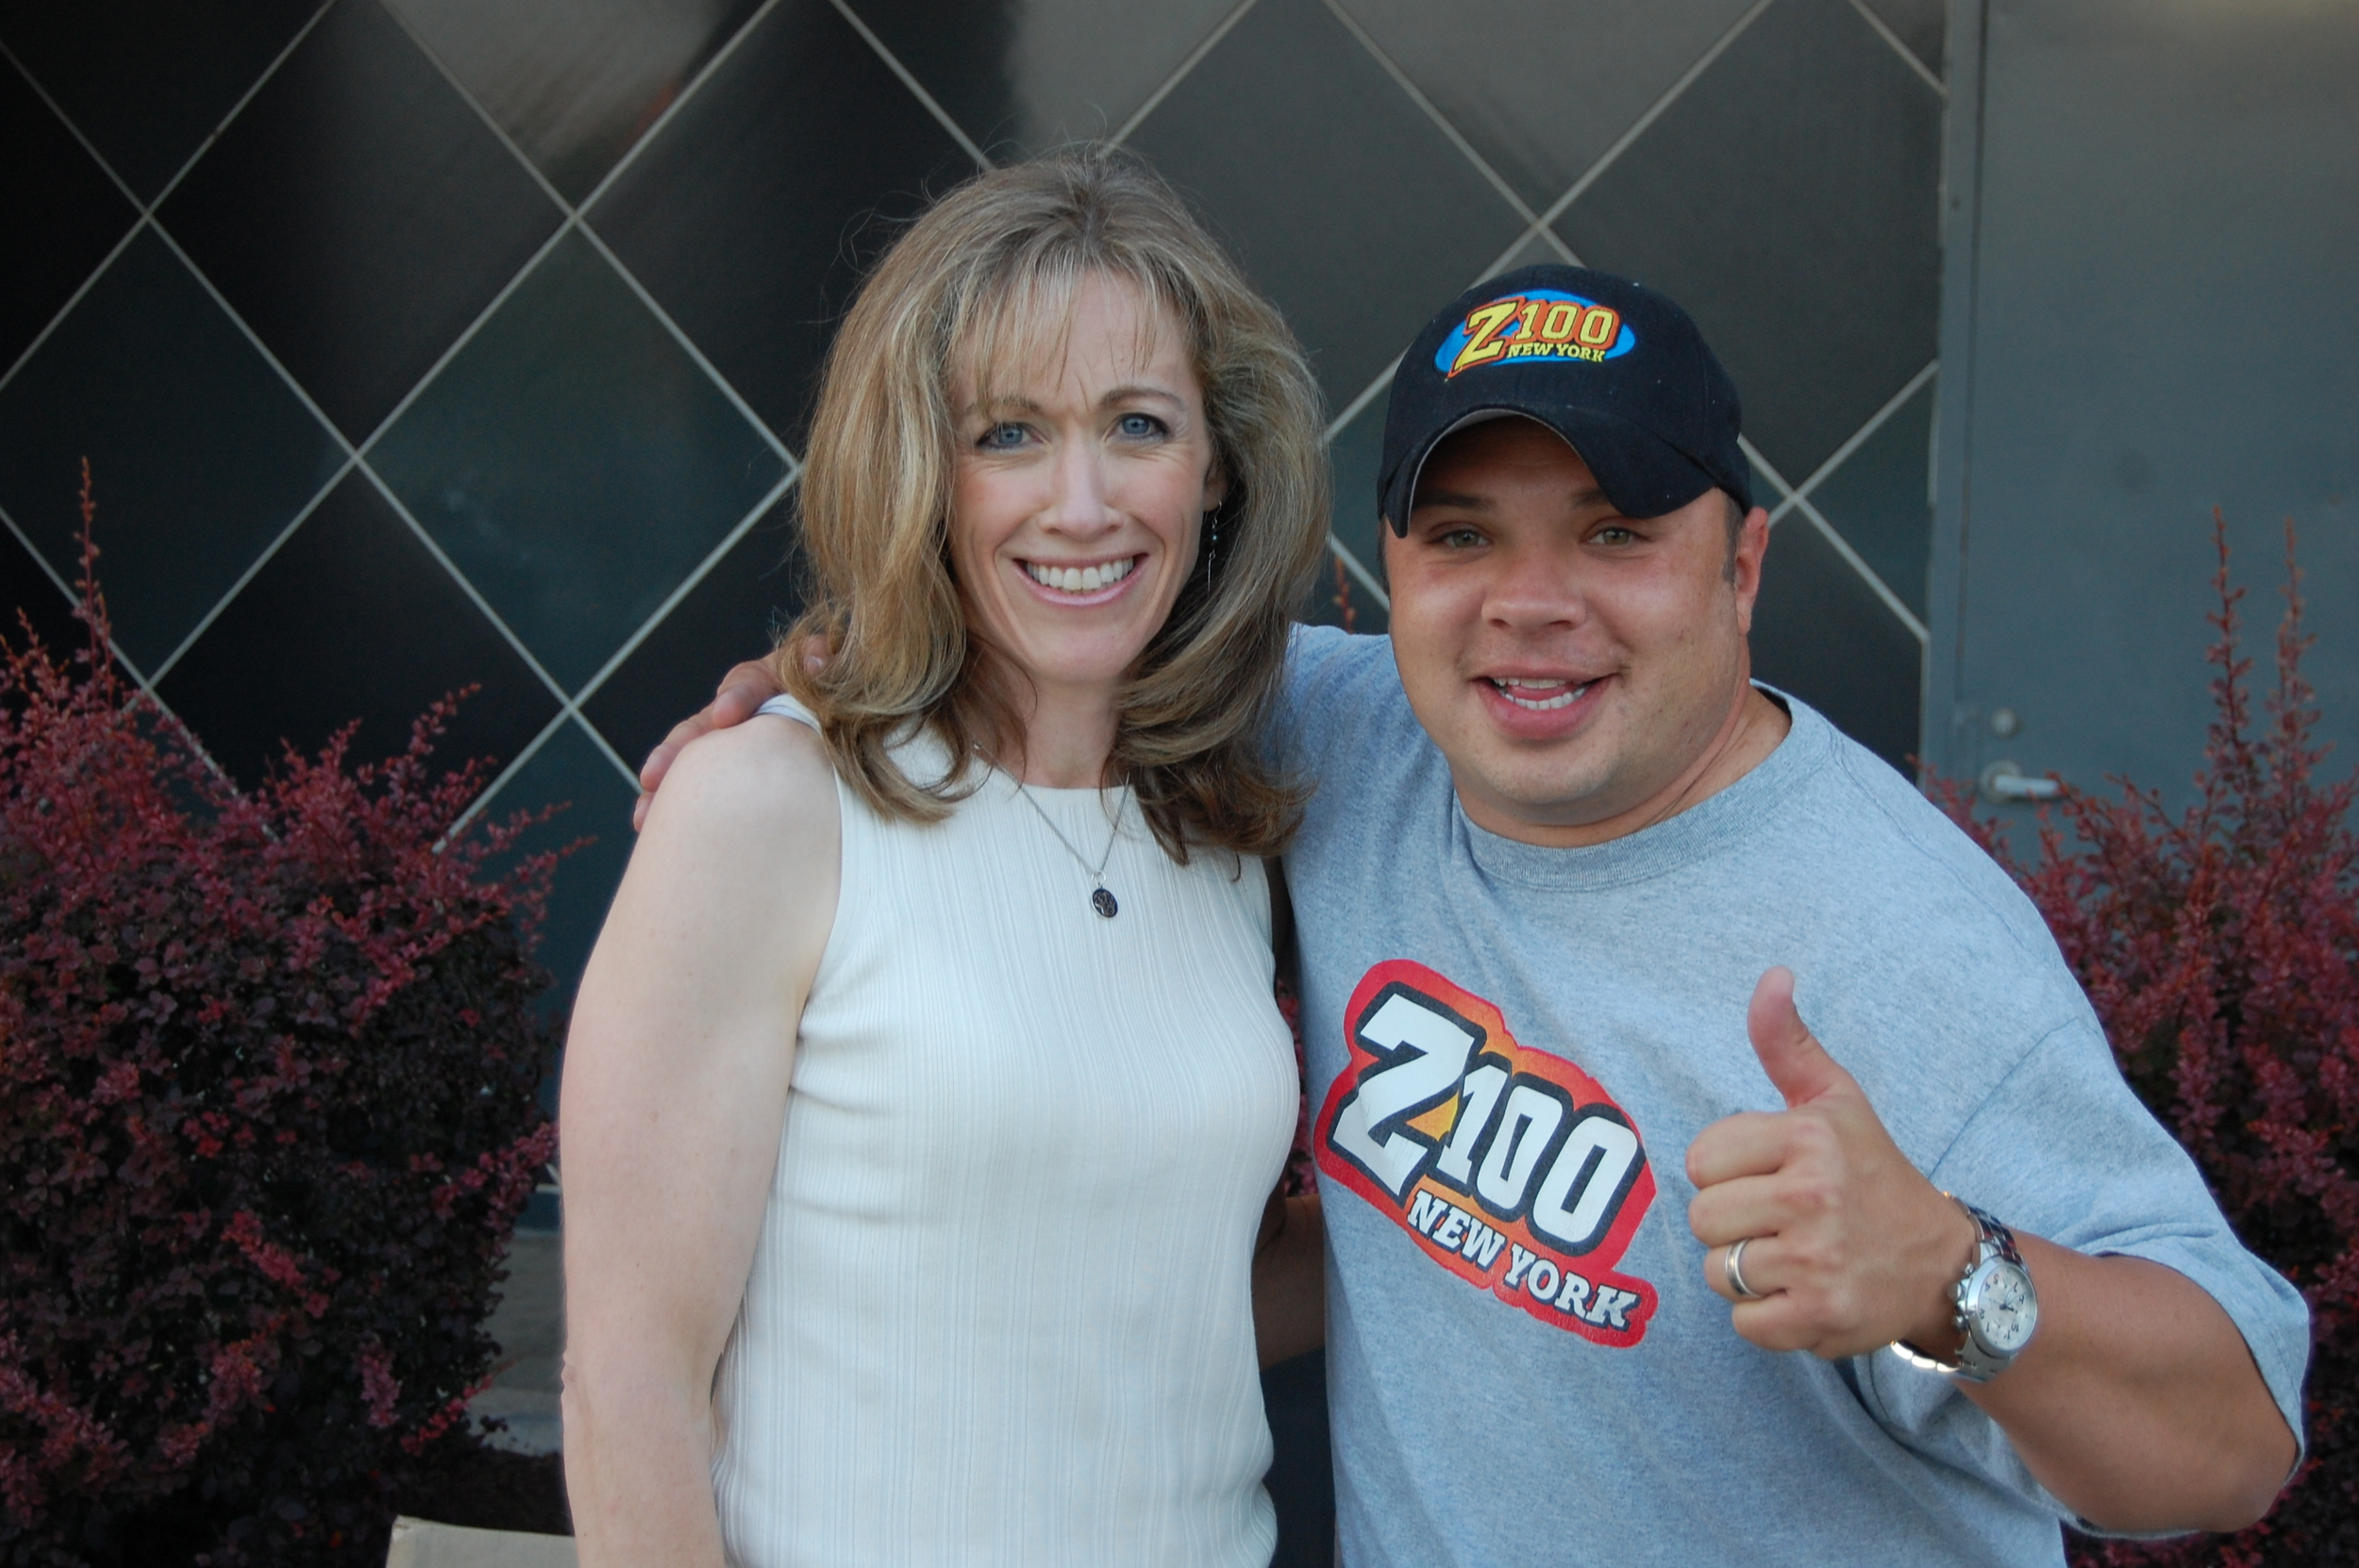 Risa Hoag with Greg T. of the Z100 Morning Show at a personal appearance for the opening of the new AMC/IMAX Theatre in New Jersey.